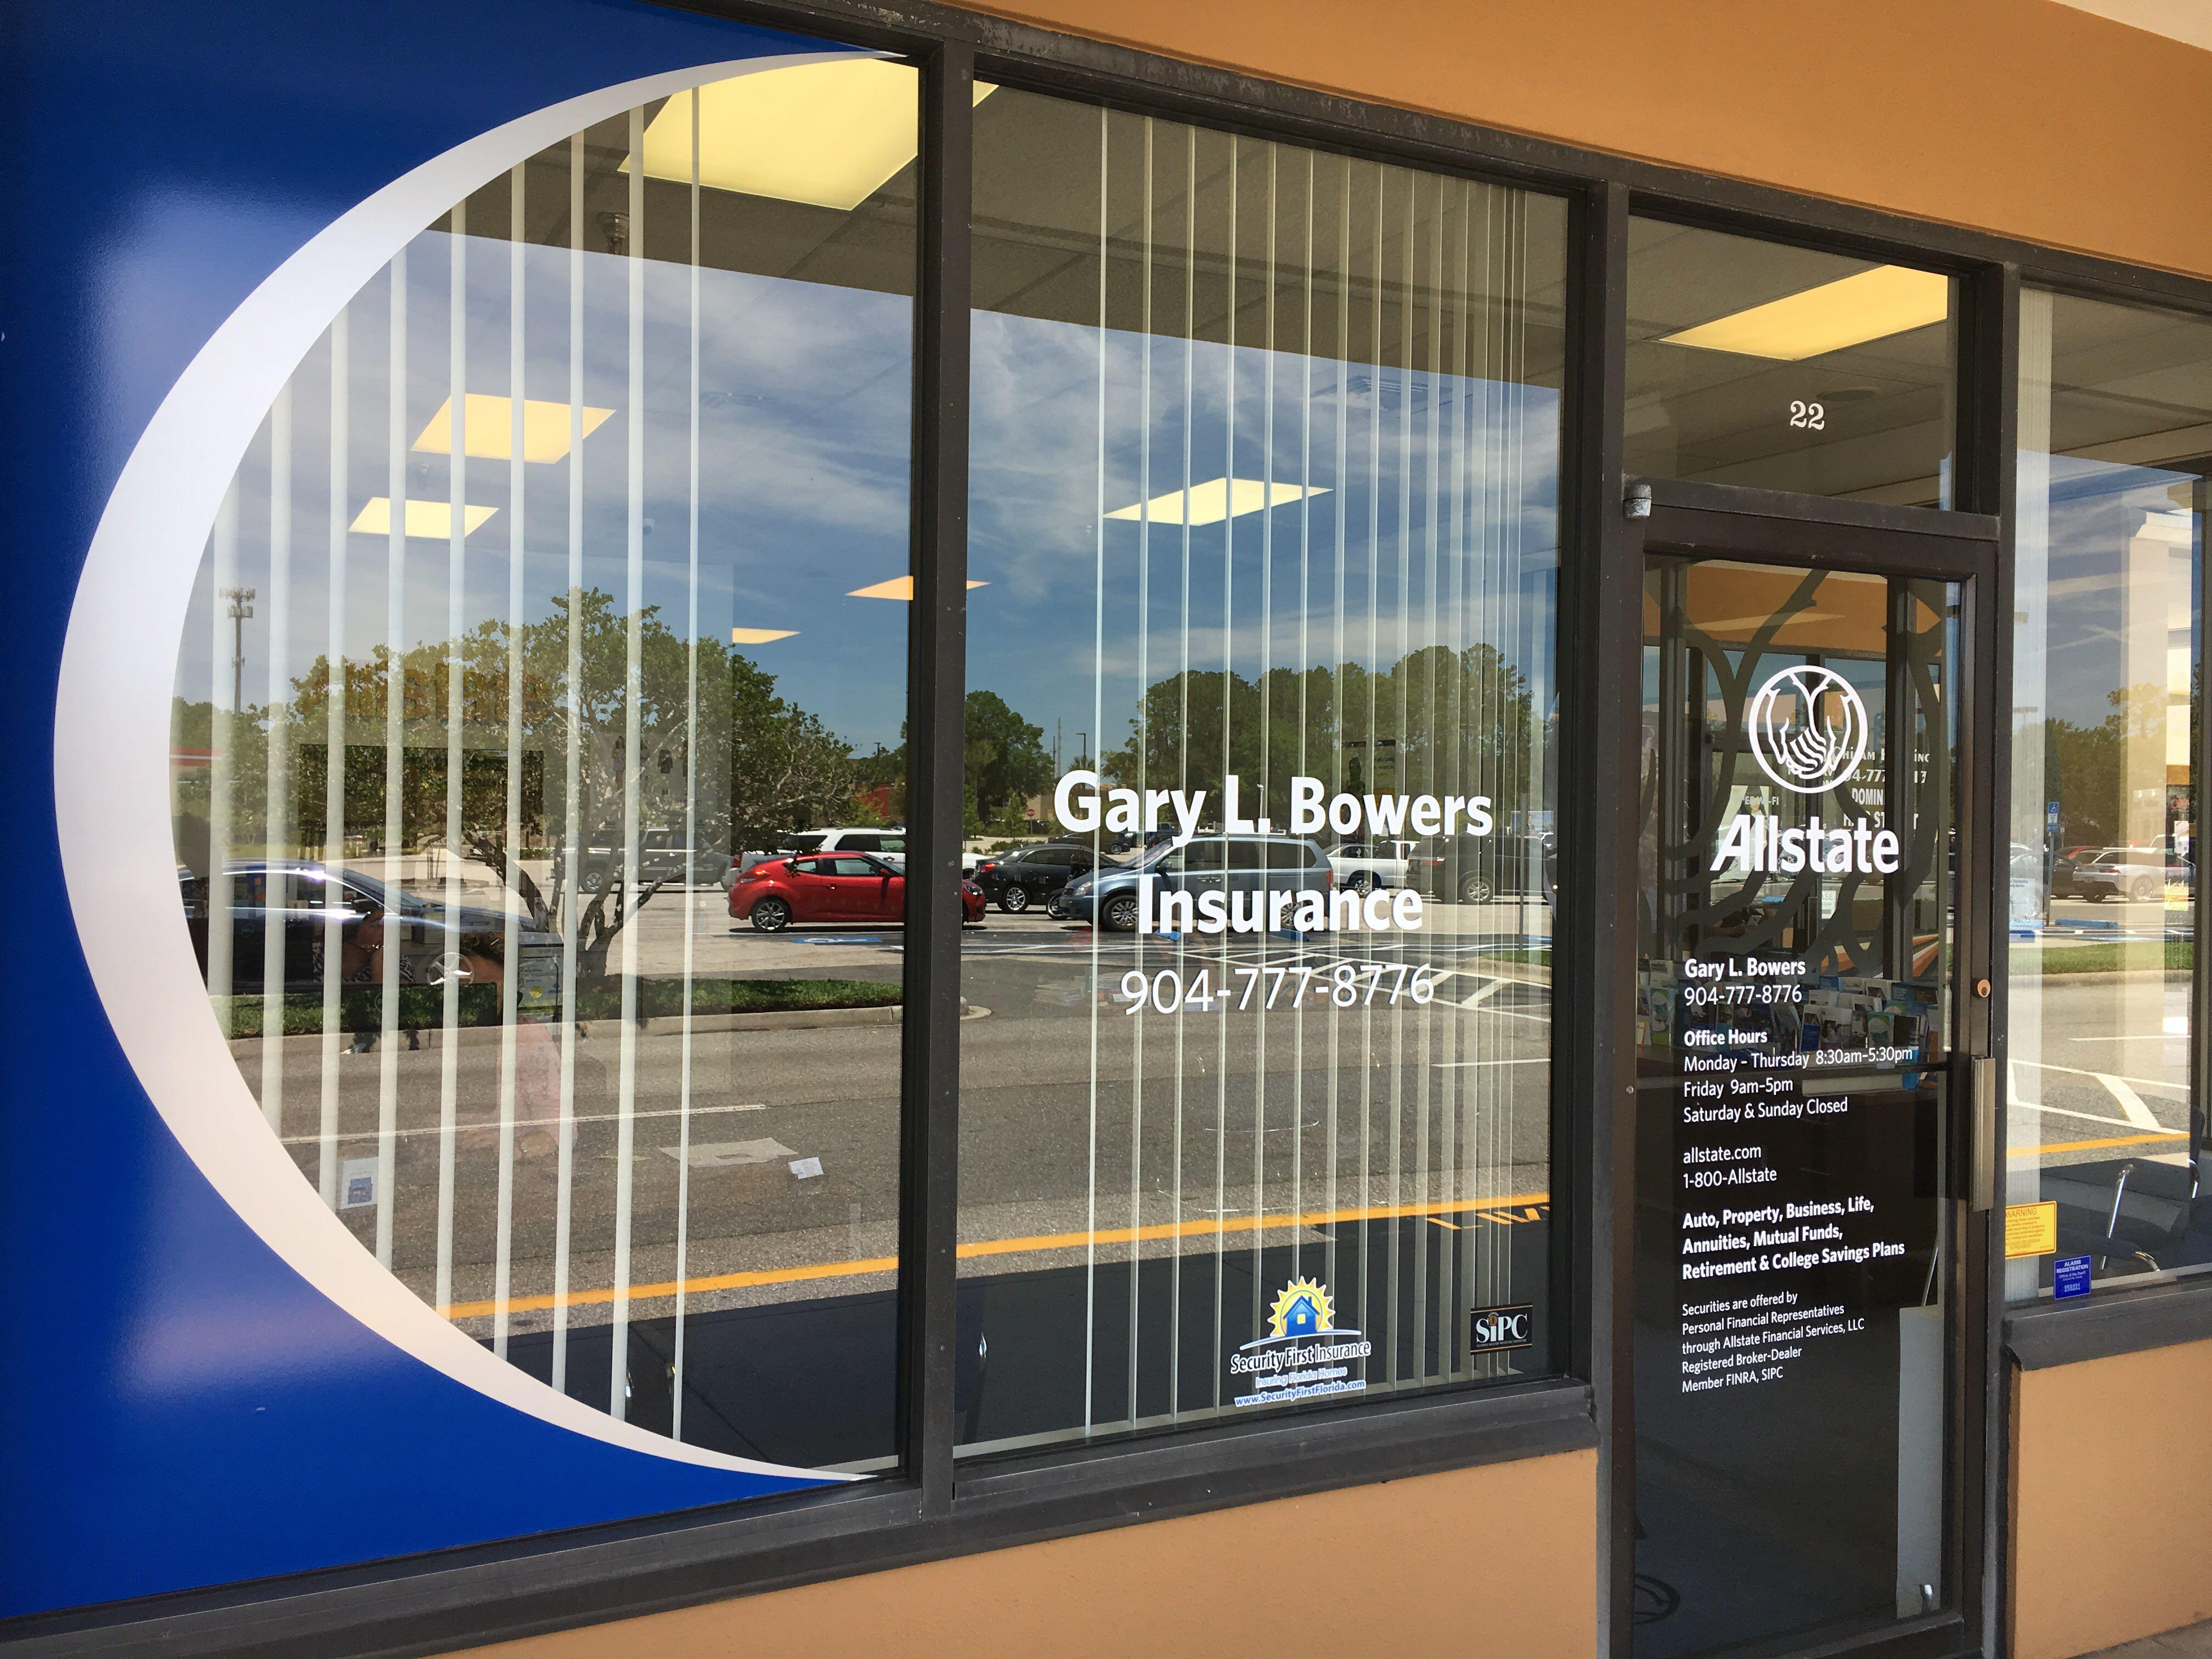 Allstate Insurance Agent: Gary Bowers image 1